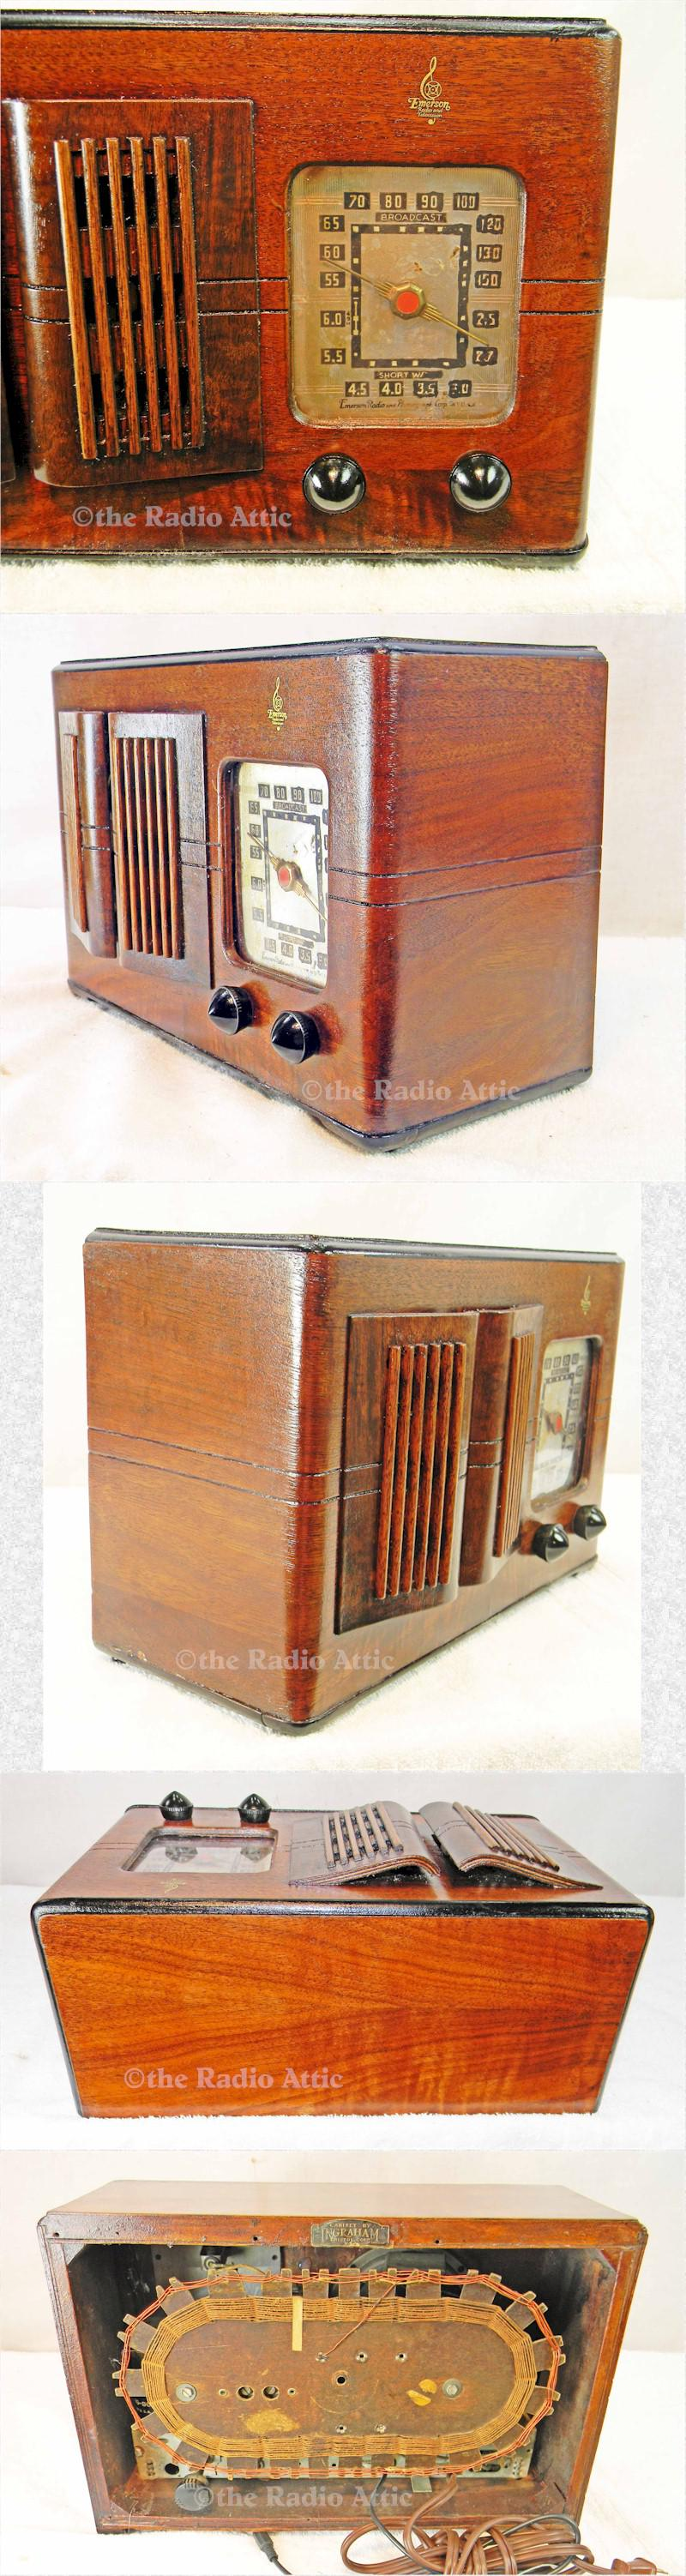 Emerson CR-261 w/Ingraham Cabinet (1937)